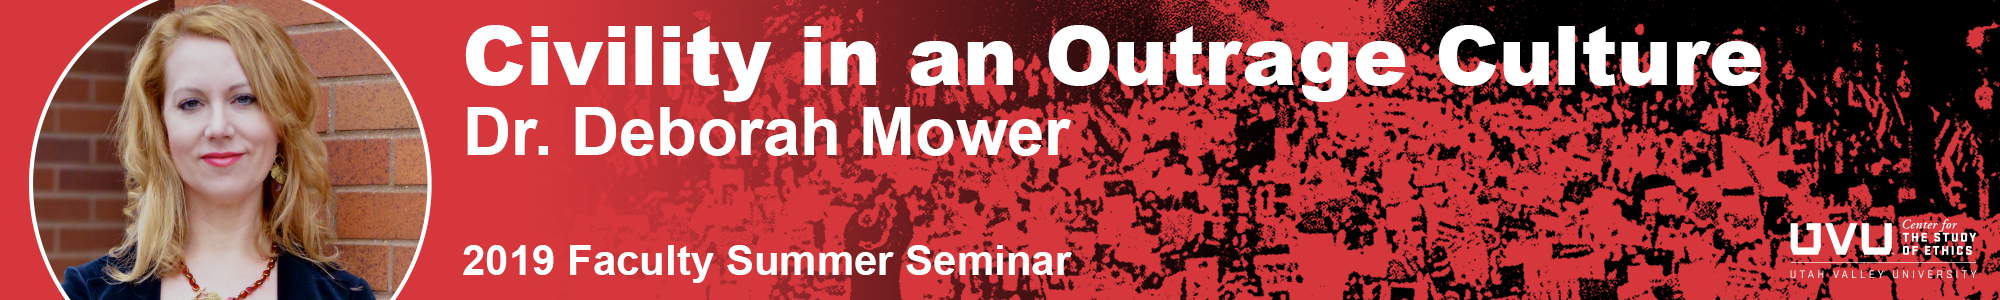 This is a banner announcement for the 2019 Faculty Summer Seminar featuring Dr. Deborah Mower. She will be speaking on Civility in an Outrage Culture.